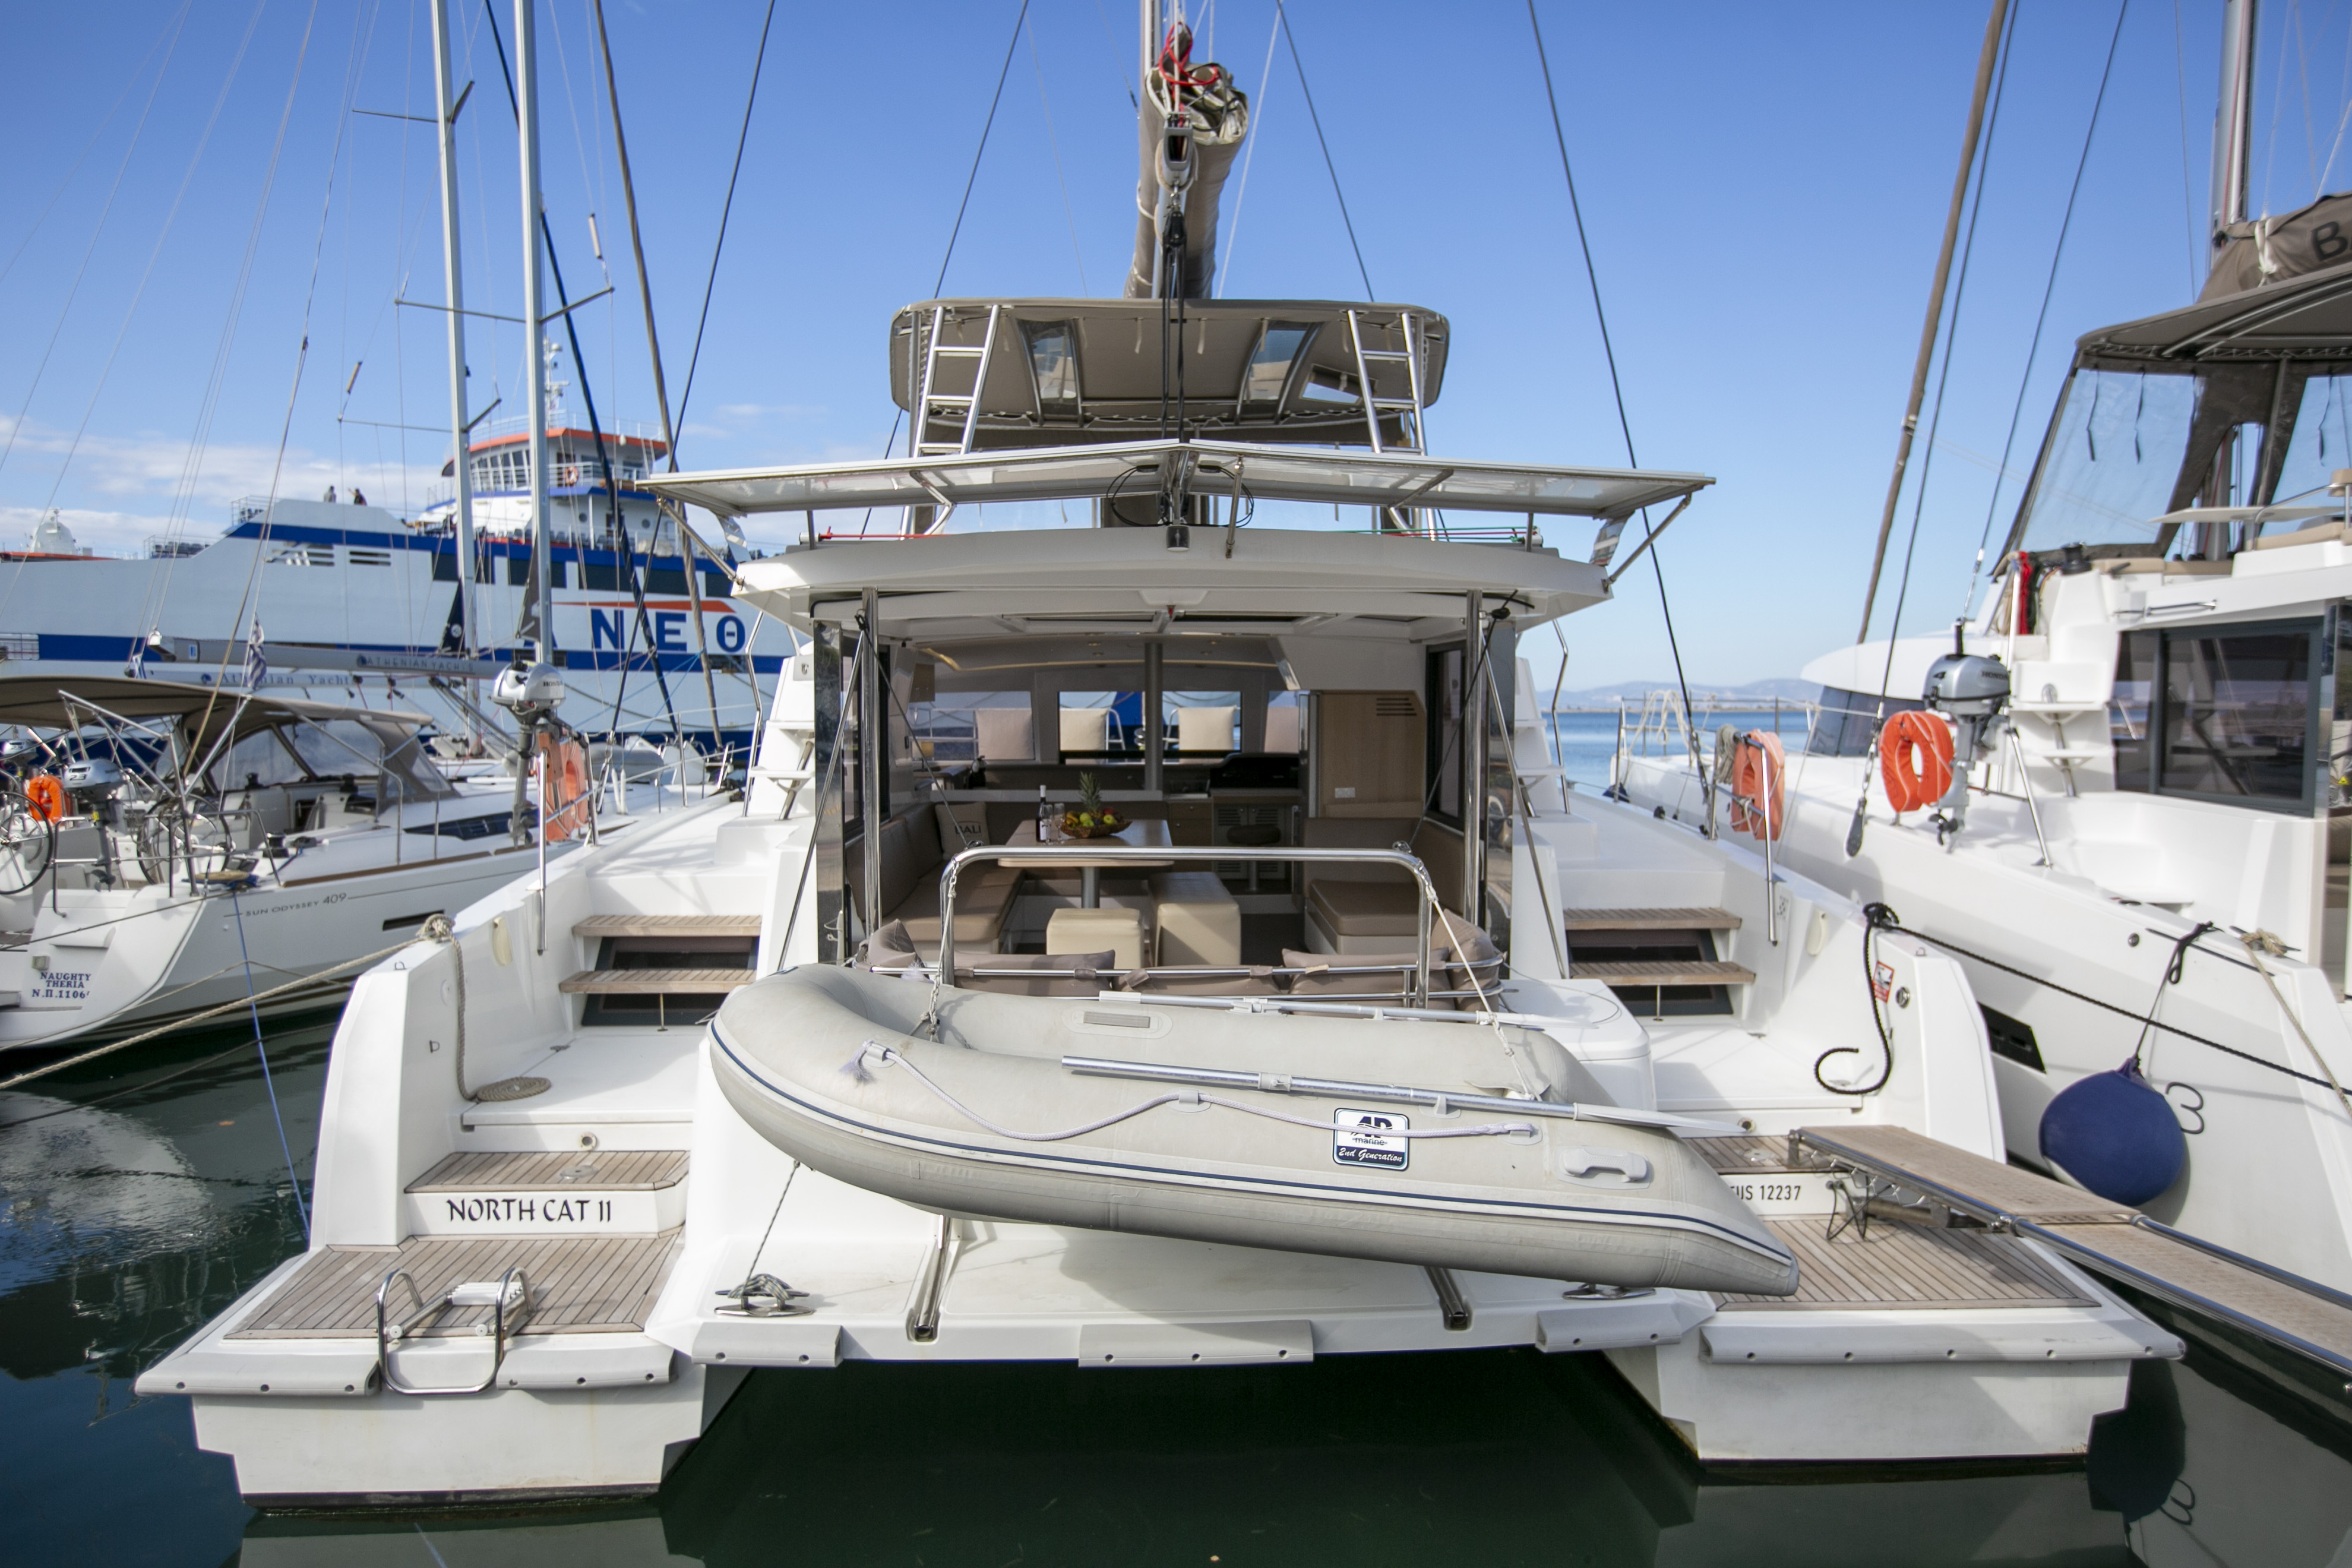 North Cat II / with air-condition, generator & watermaker